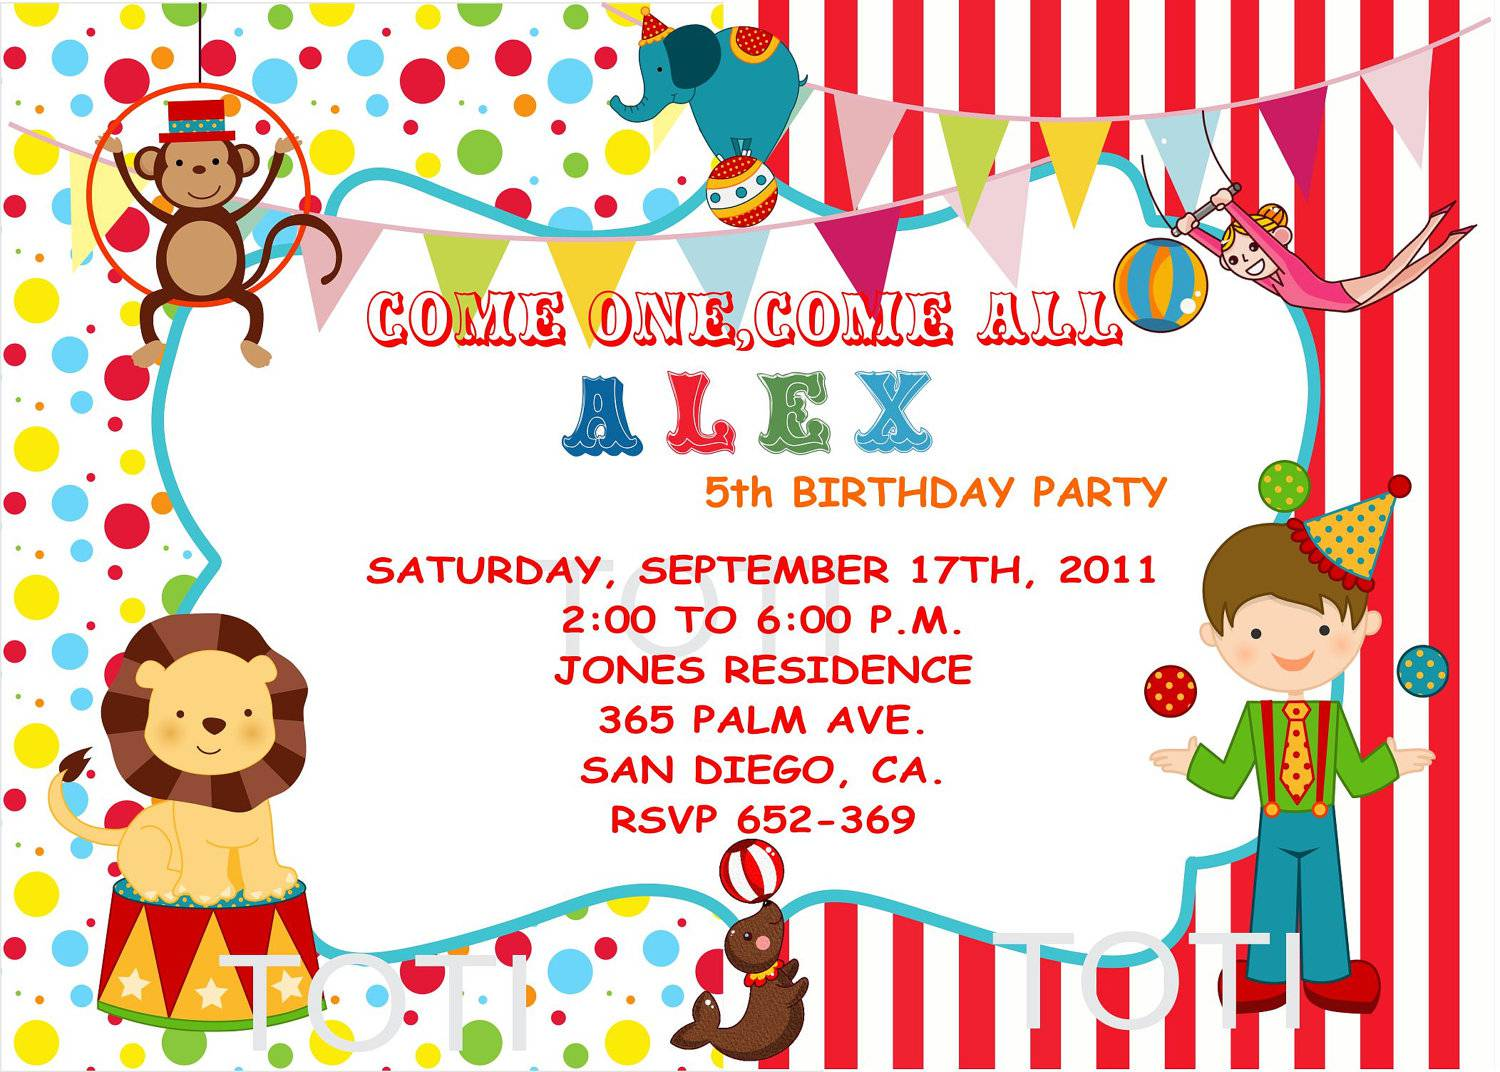 Circus Party Invitations Circus Party Invitations In Support Of